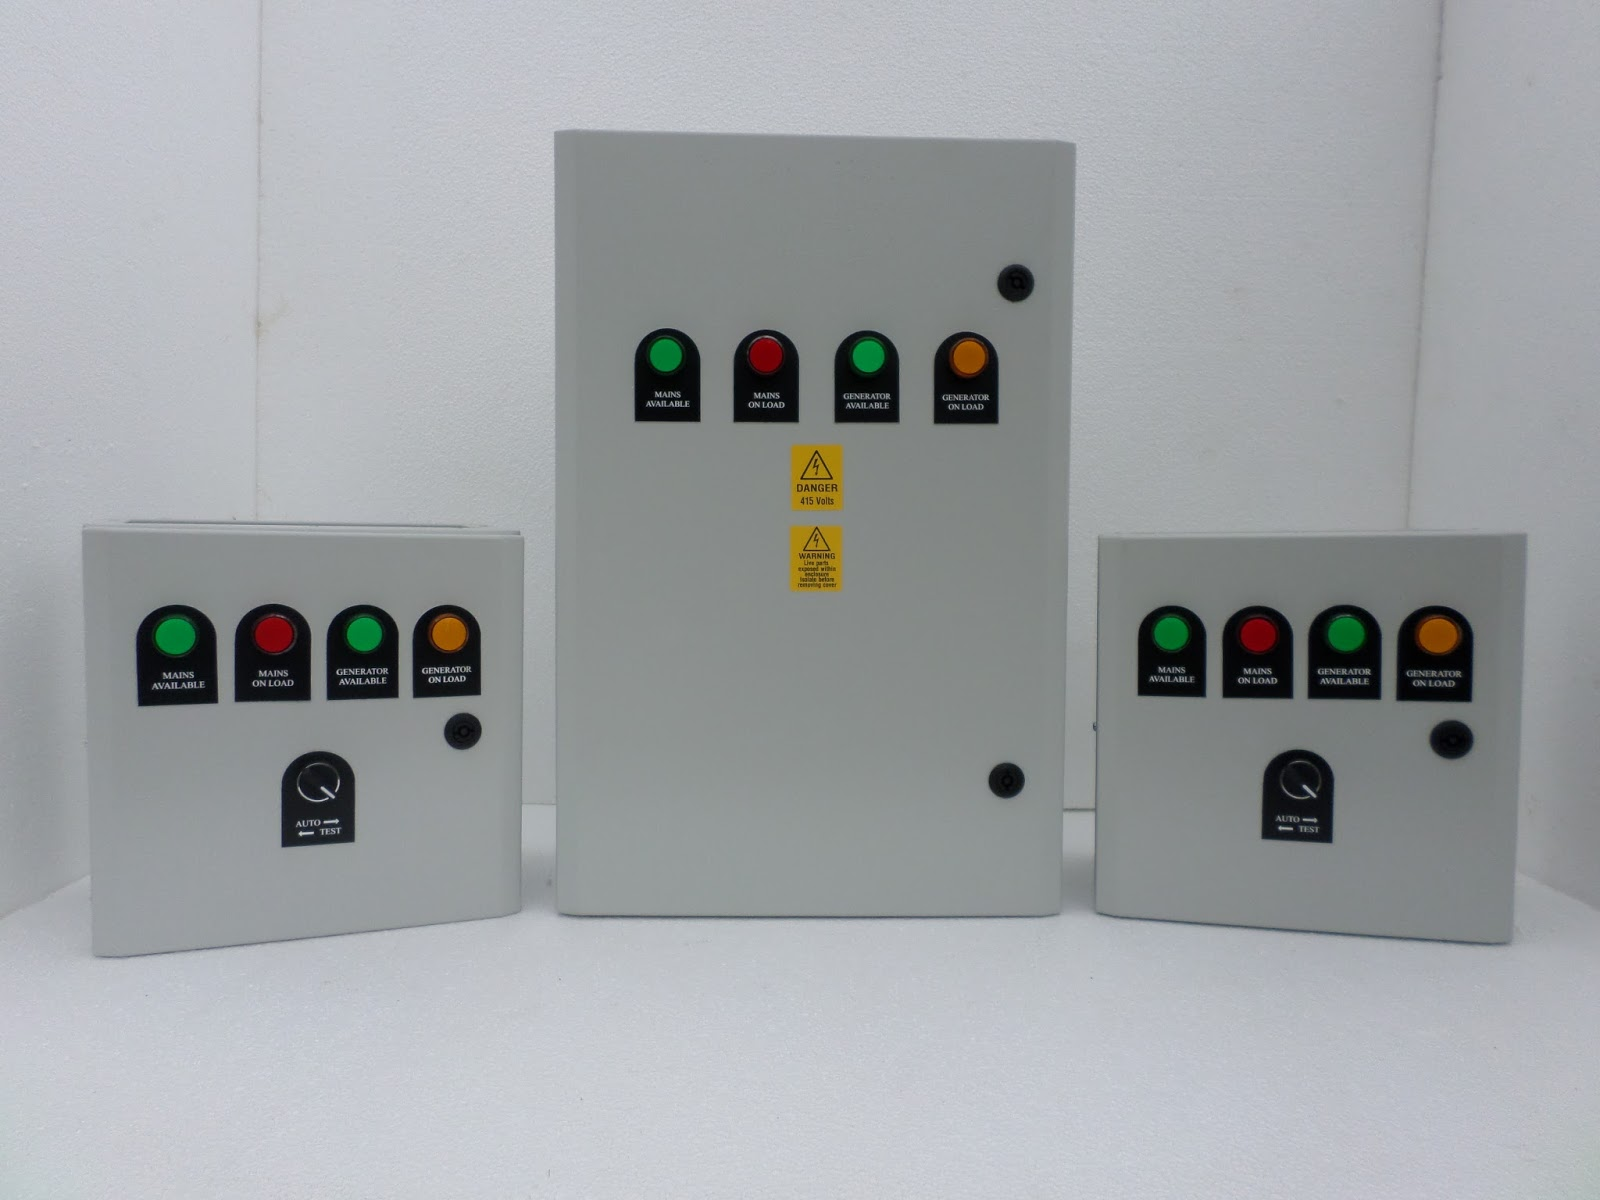 The Blades Power 100 Amp, 3 Pole Compact Automatic Transfer Switch Panel is  an ideal choice for Home usage, because of its size.